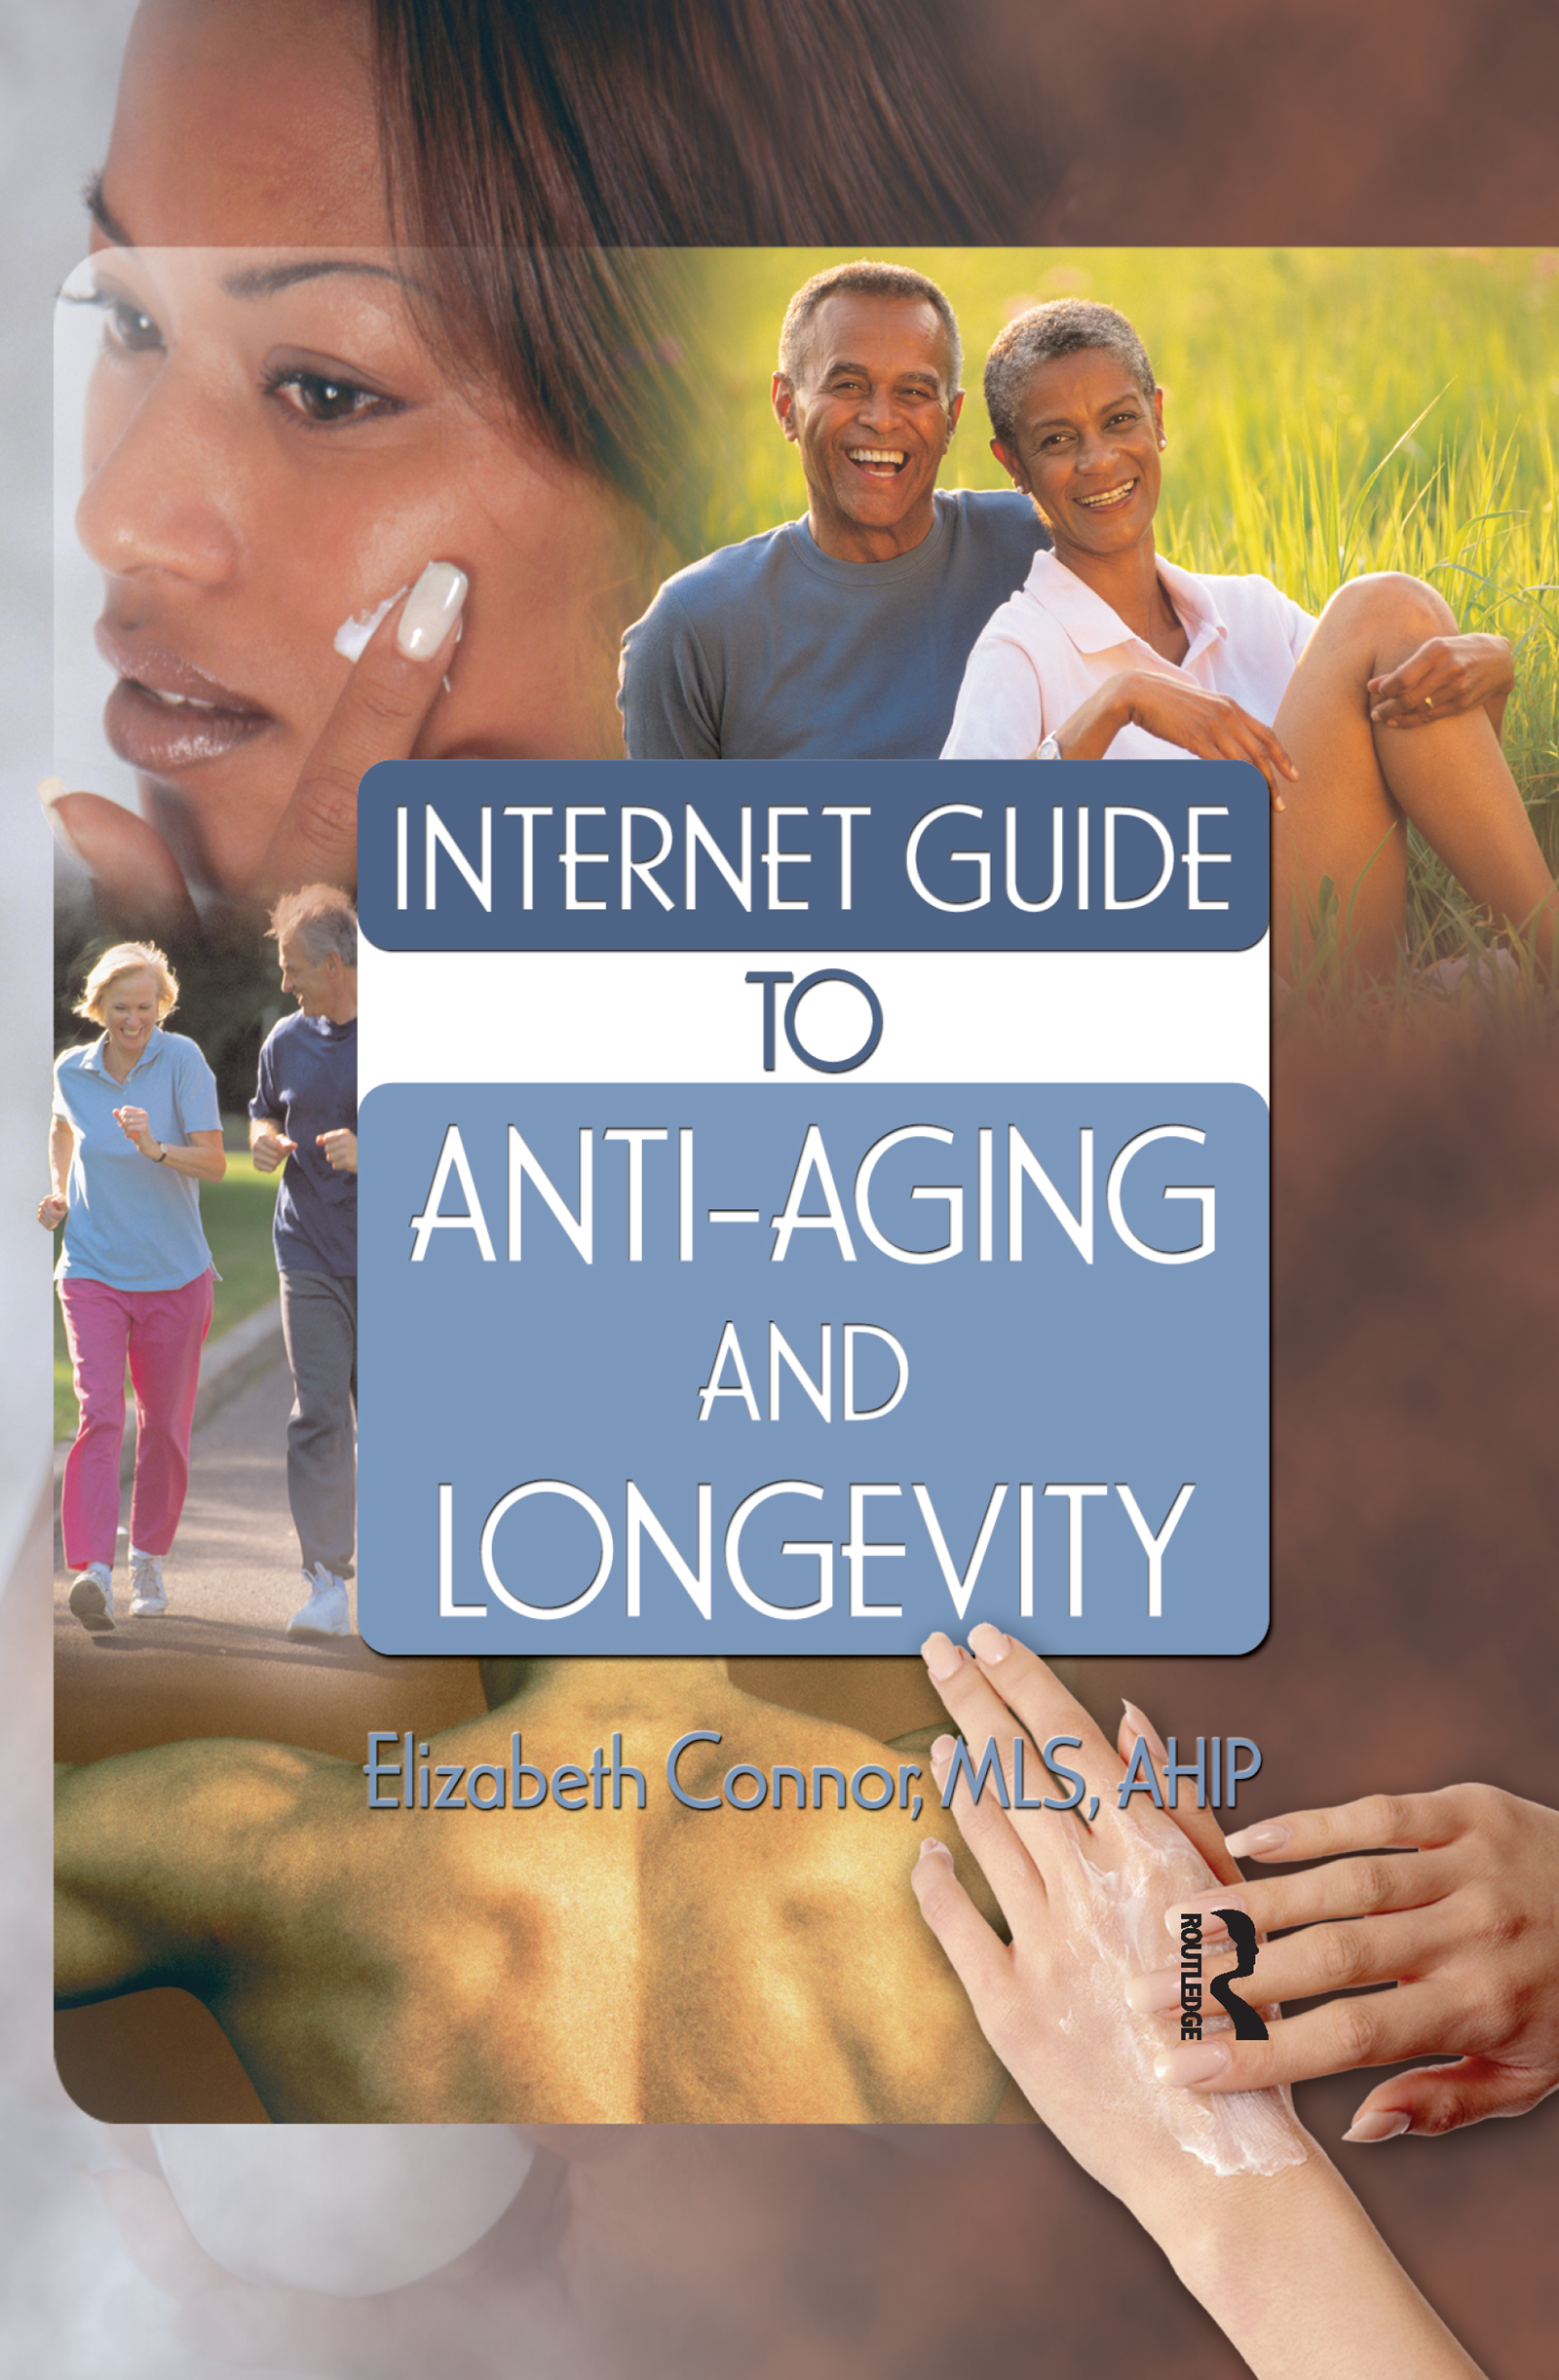 Internet Guide to Anti-Aging and Longevity